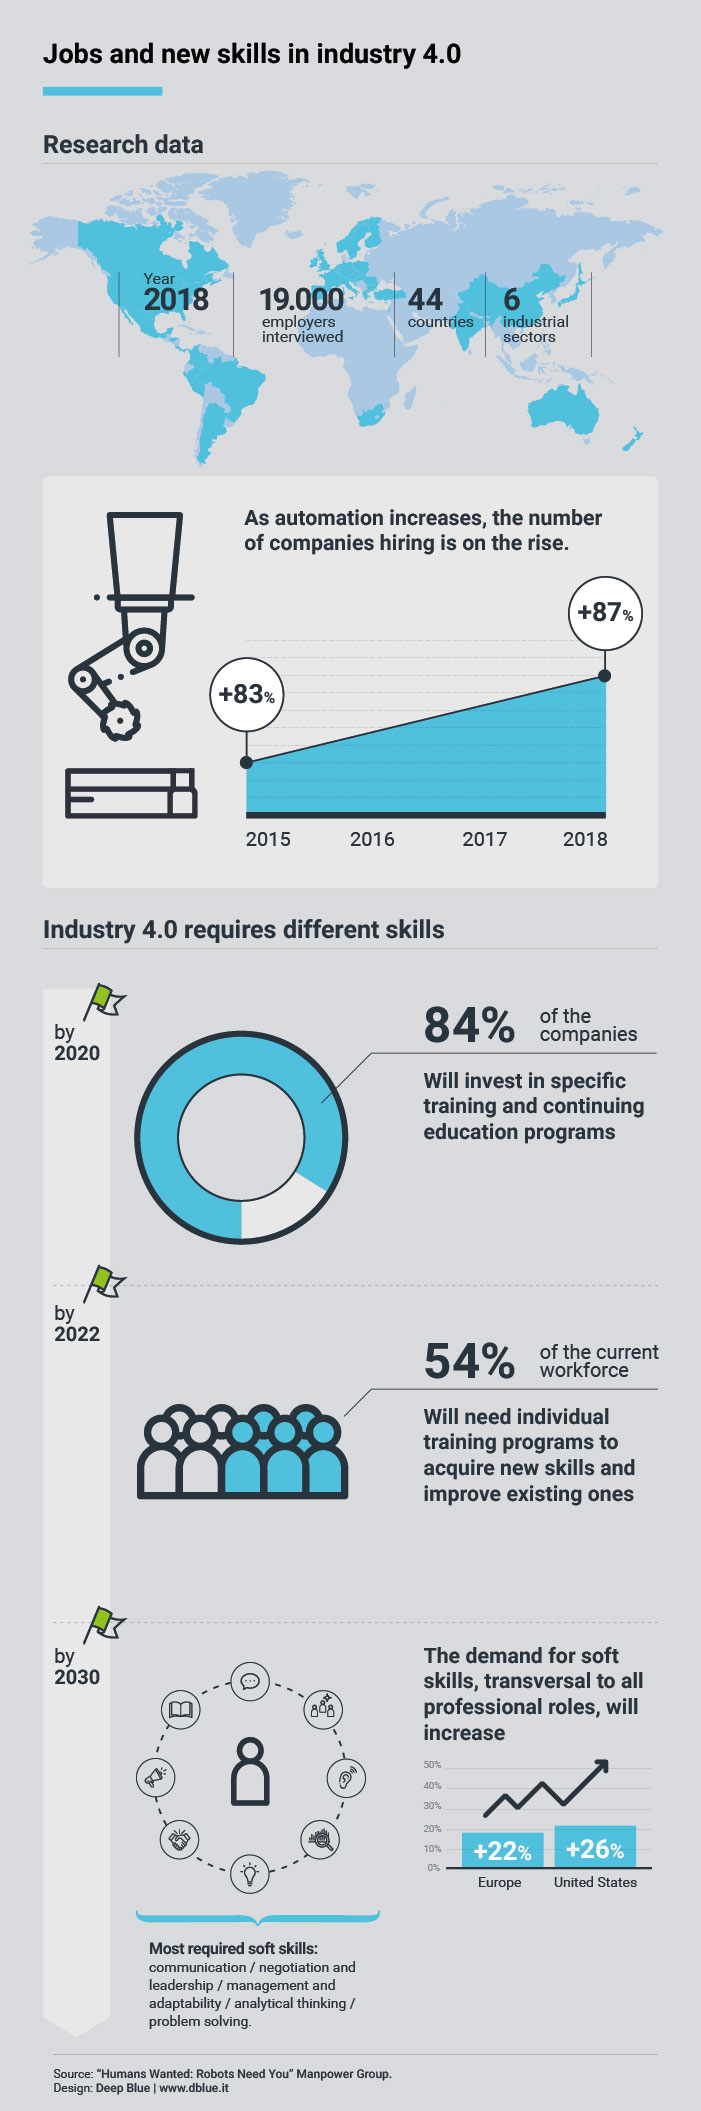 As automation increases, the number of companies hiring is on the rise. Industry 4.0 requires different skills; many companies will invest in specific training and continuing education programs to keep their employees skilled. The demand for soft, transversal skills will also increase. The most important will be communication, negotiation, leadership, problem solving.